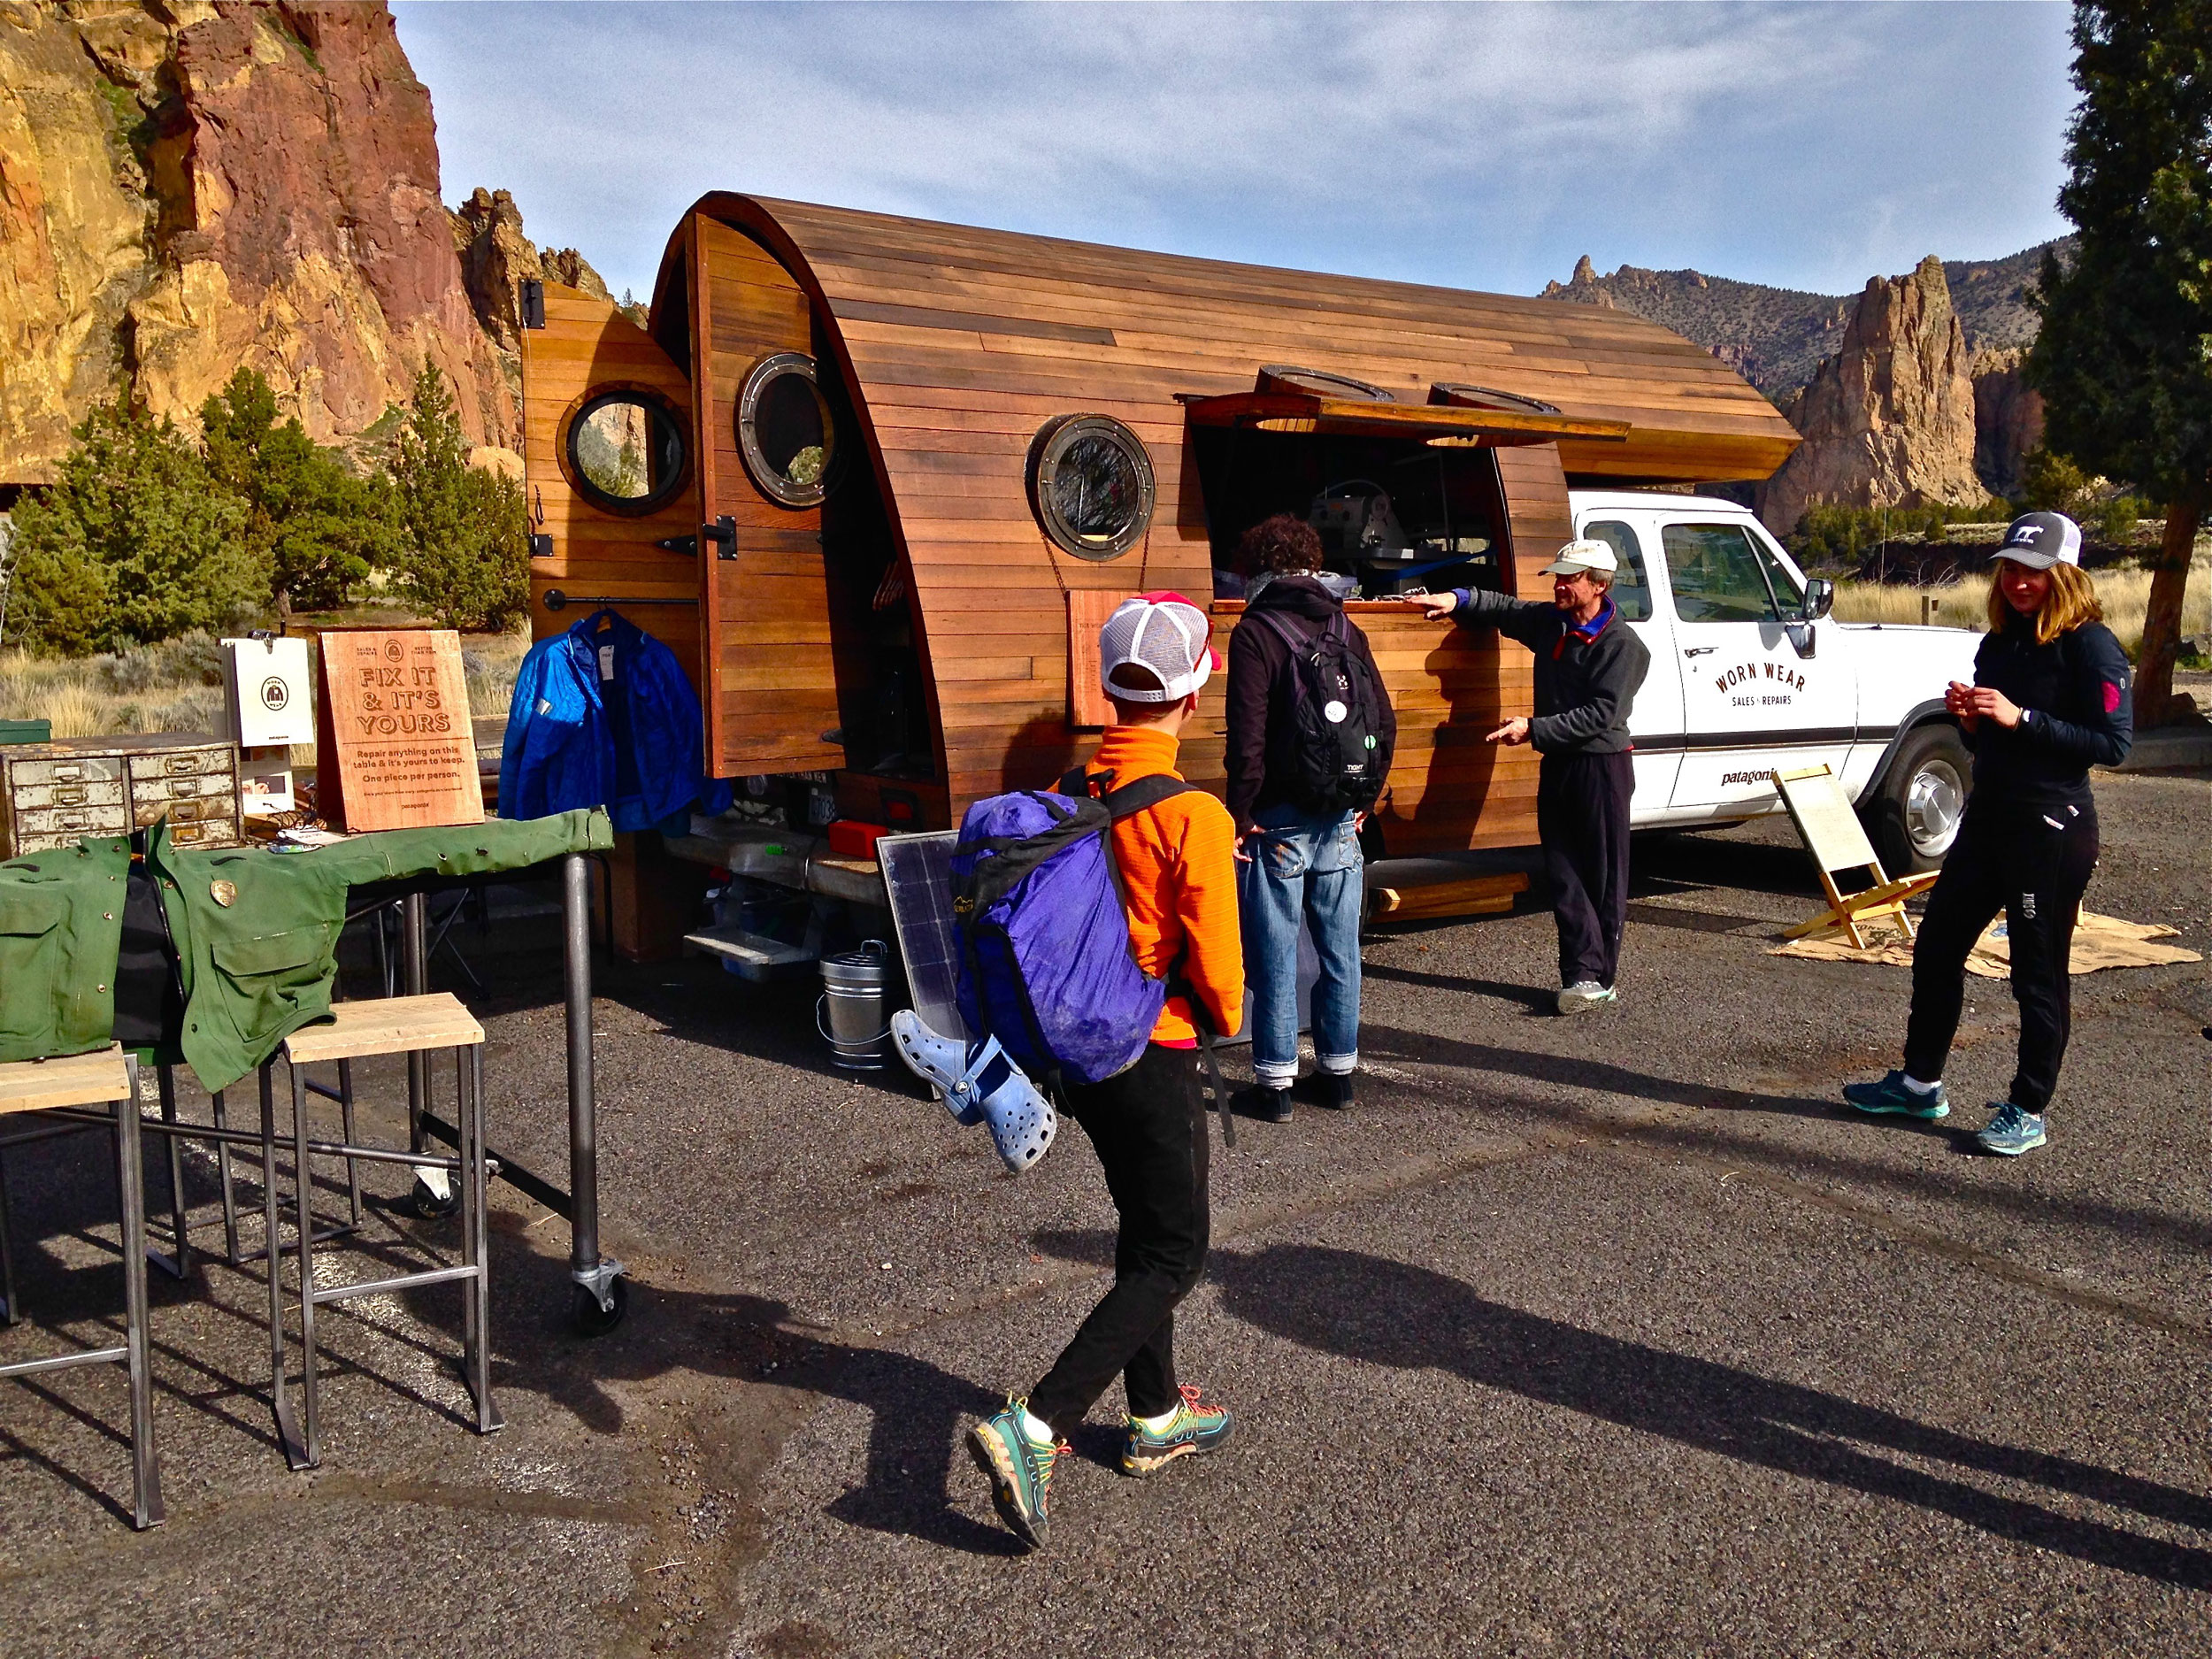 Patagonia Worn Wear Tour event